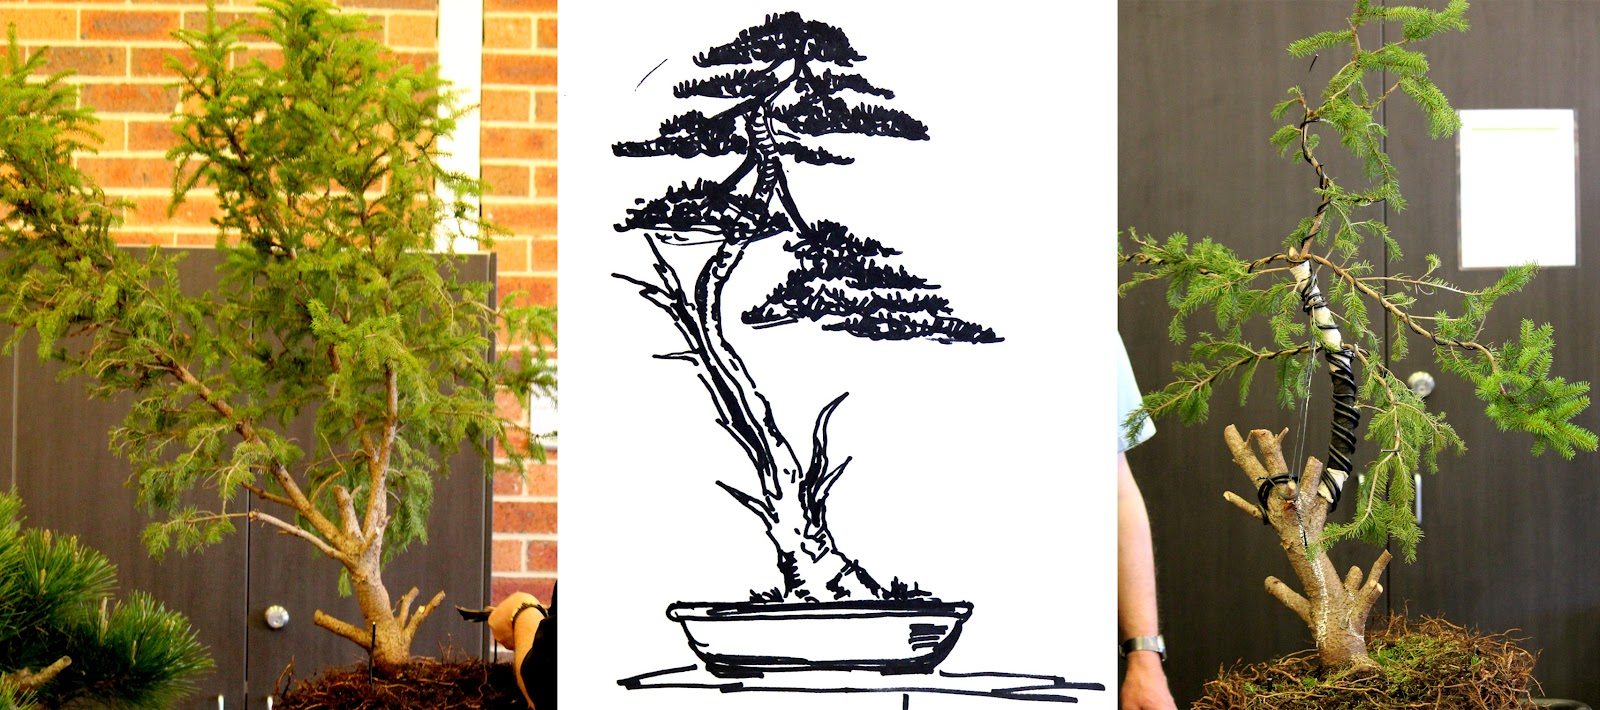 Kigawa39s Bonsai Blog Demonstration By Marc Nelanders